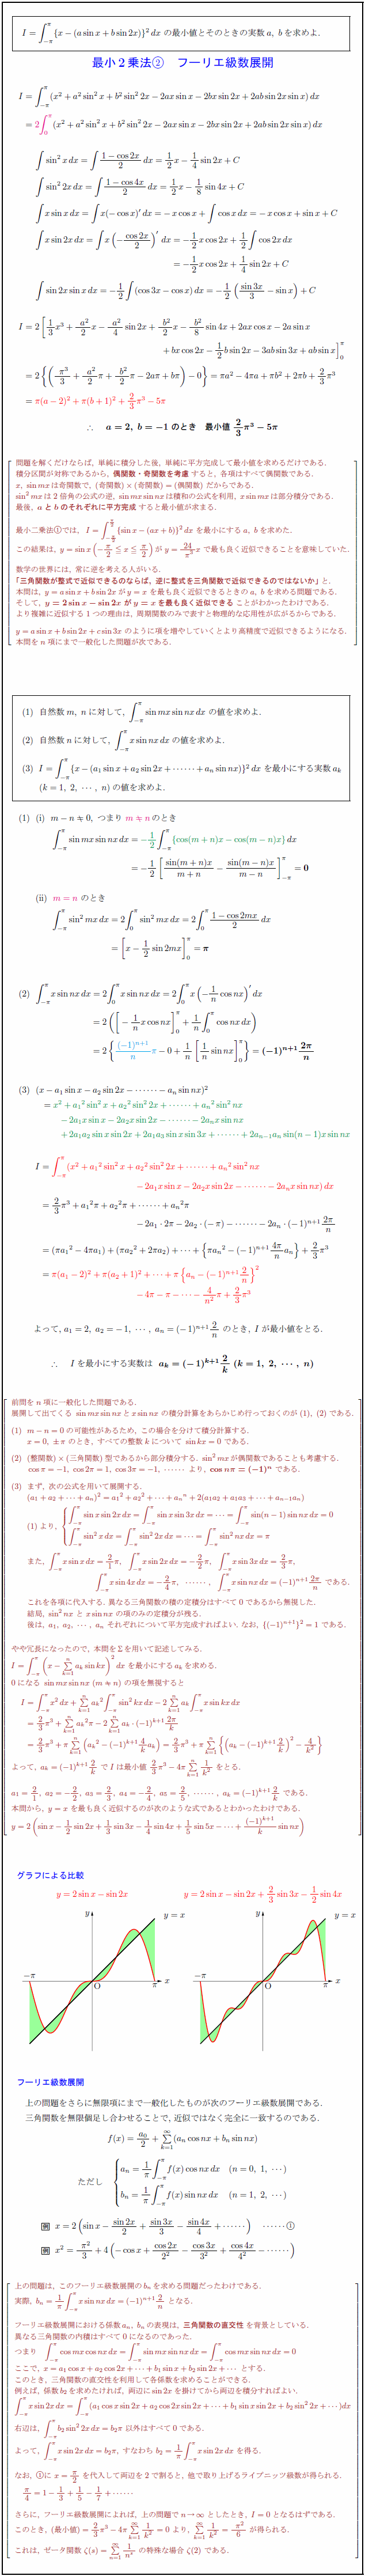 fourier-series-expansion